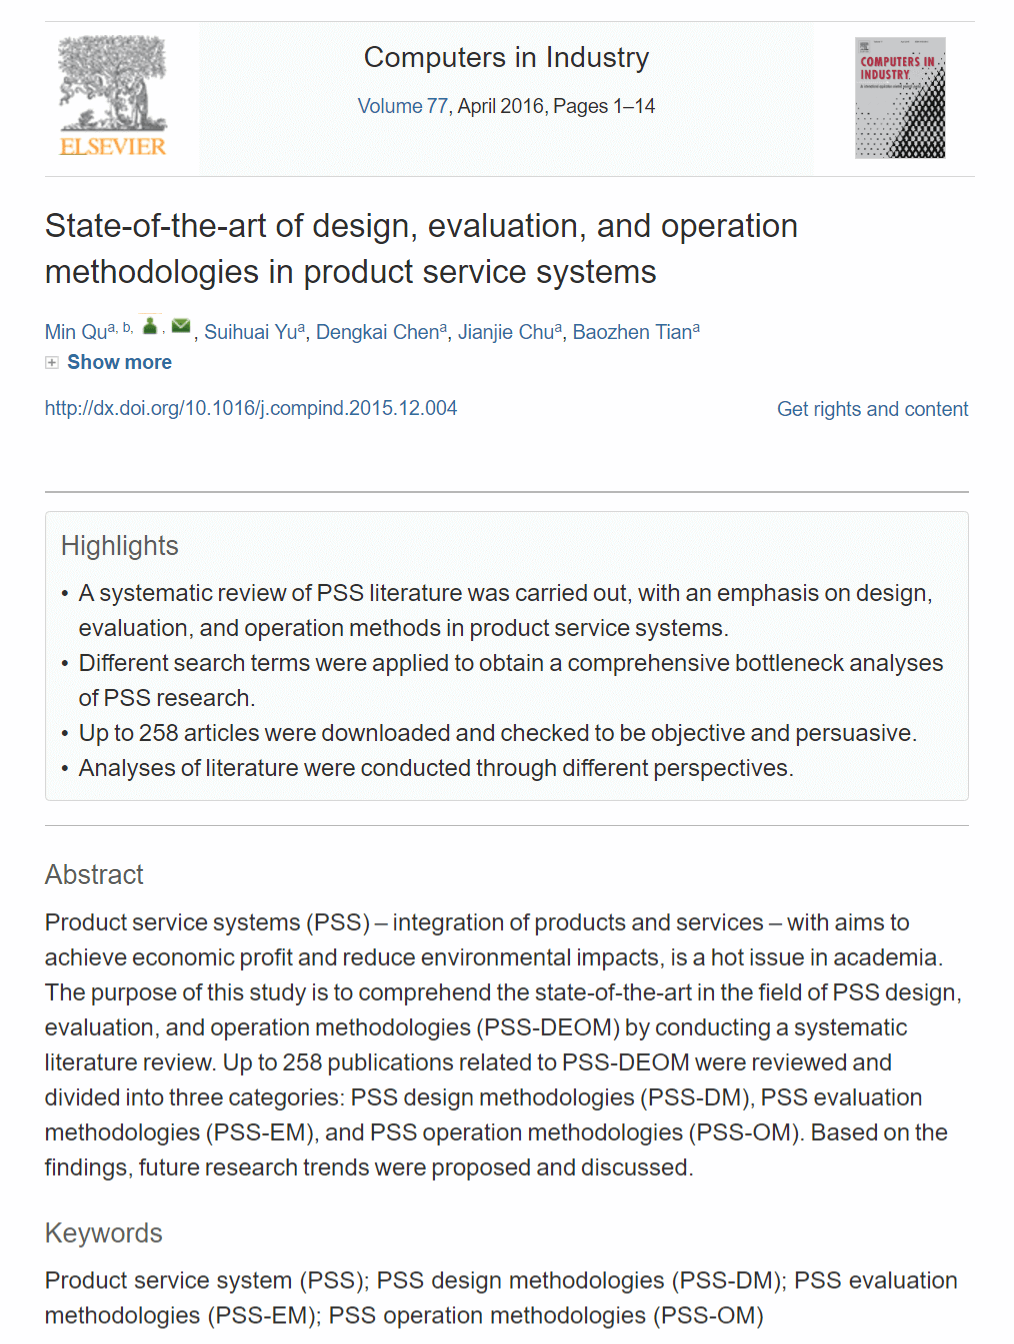 State-of-the-art of Design, Evaluation, and Operation Methodologies in Product Service Systems